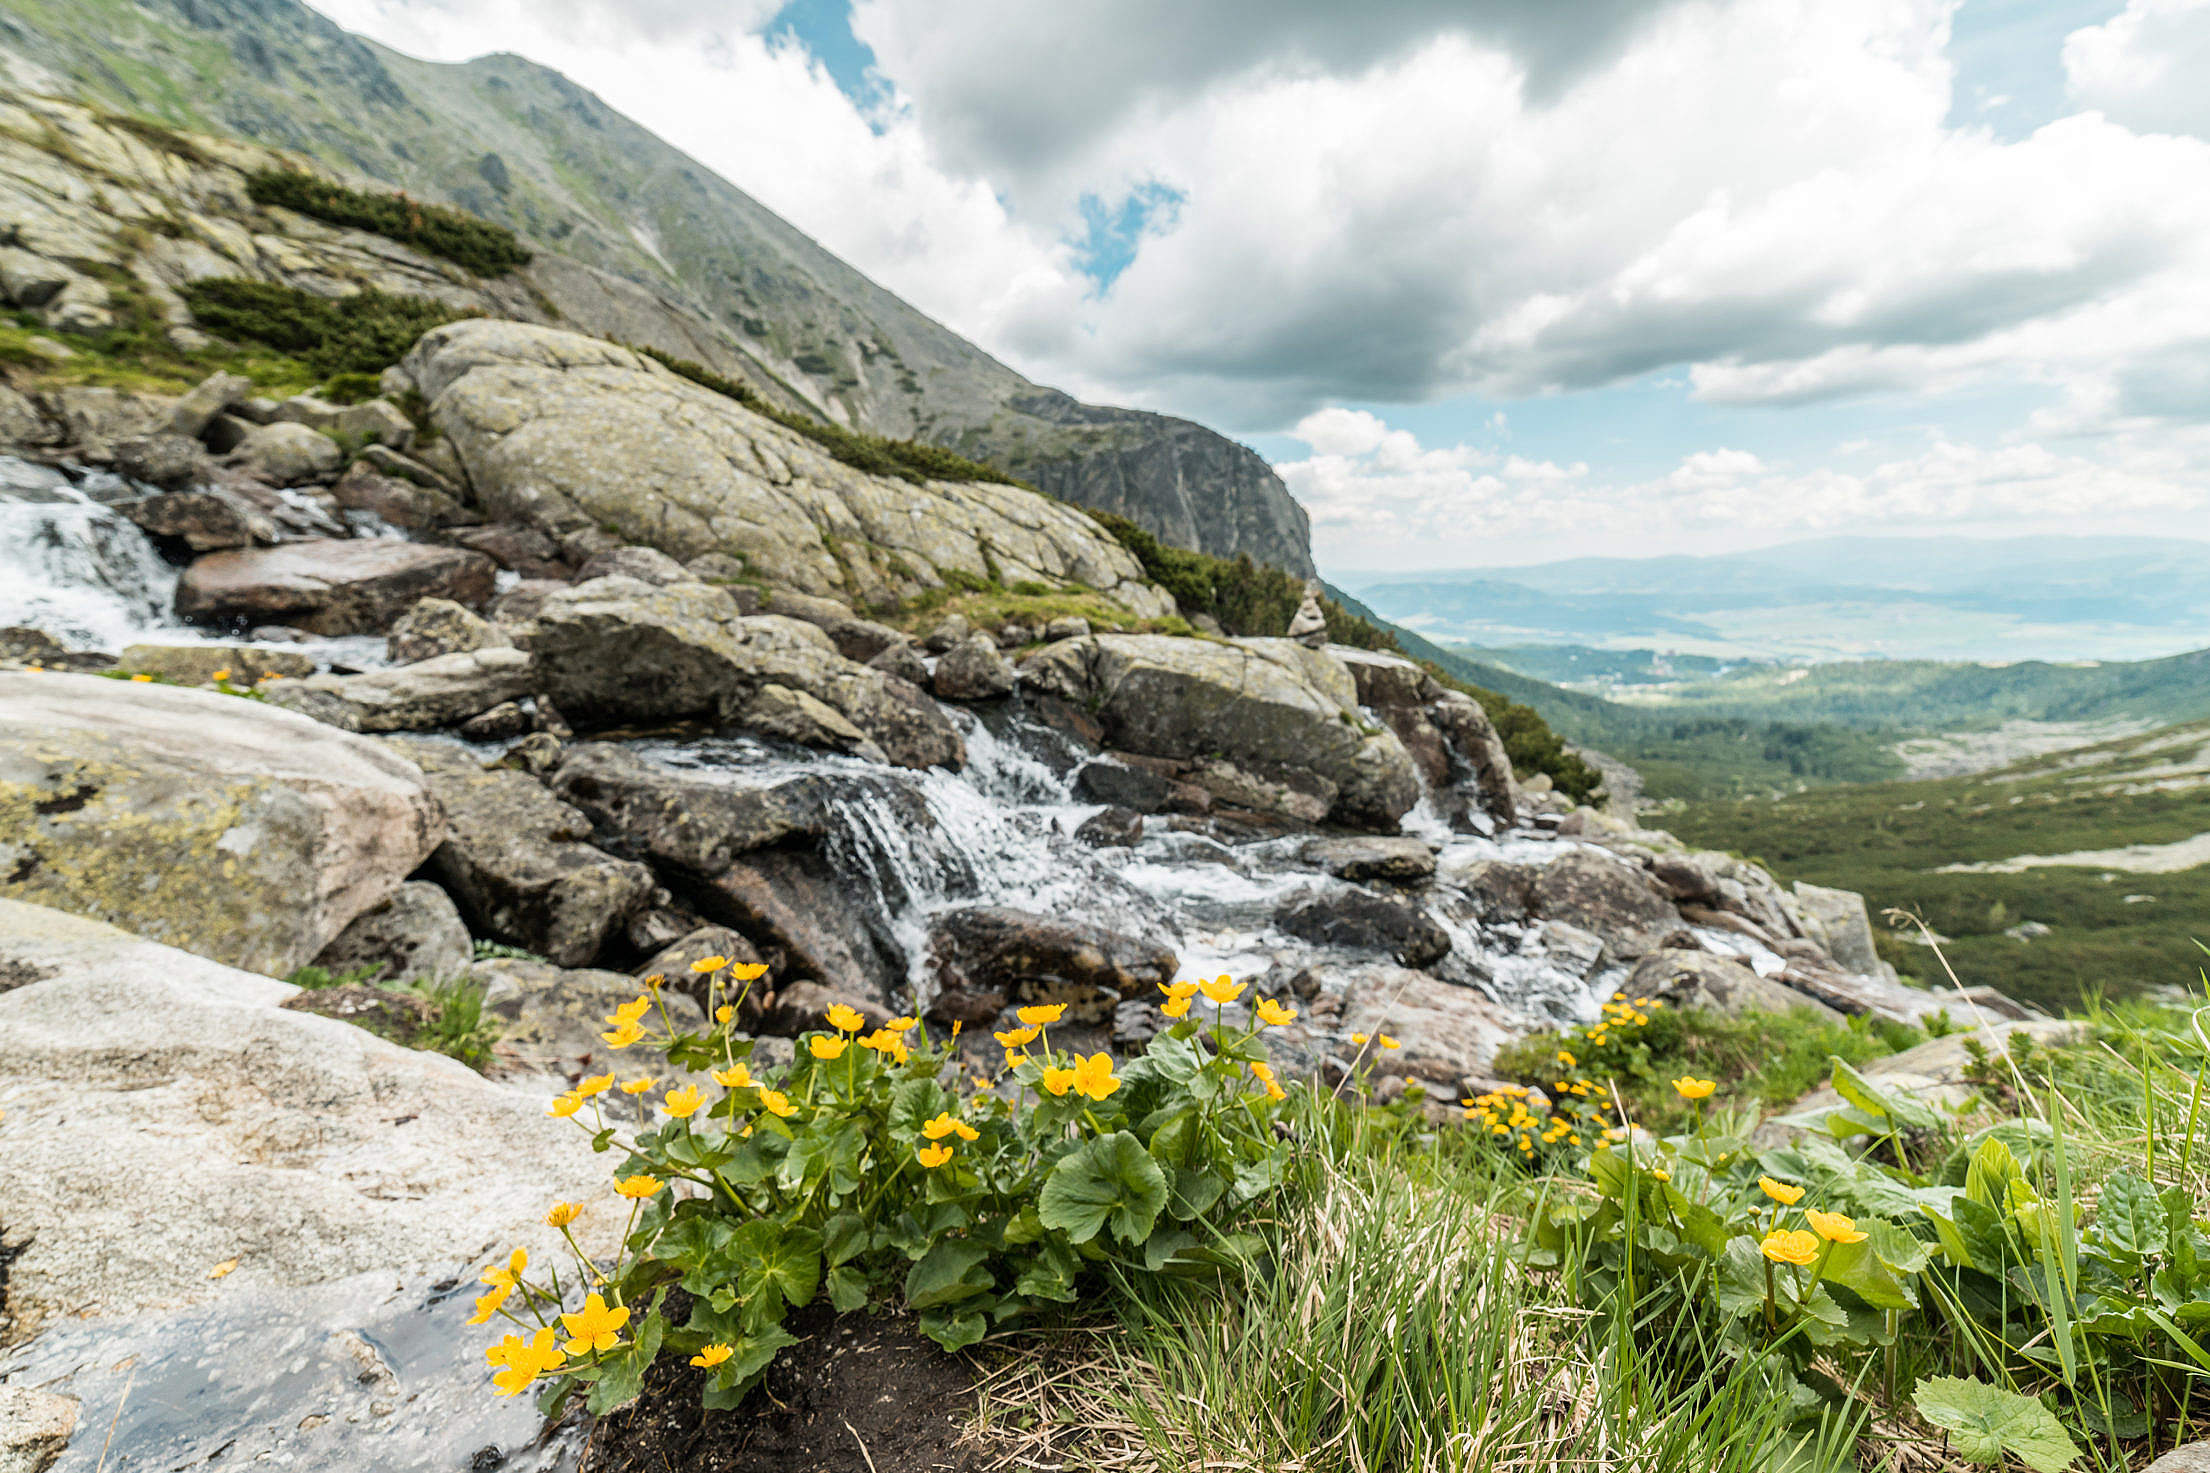 Yellow Flowers and Mountain Waterfall in Pure Nature Free Stock Photo